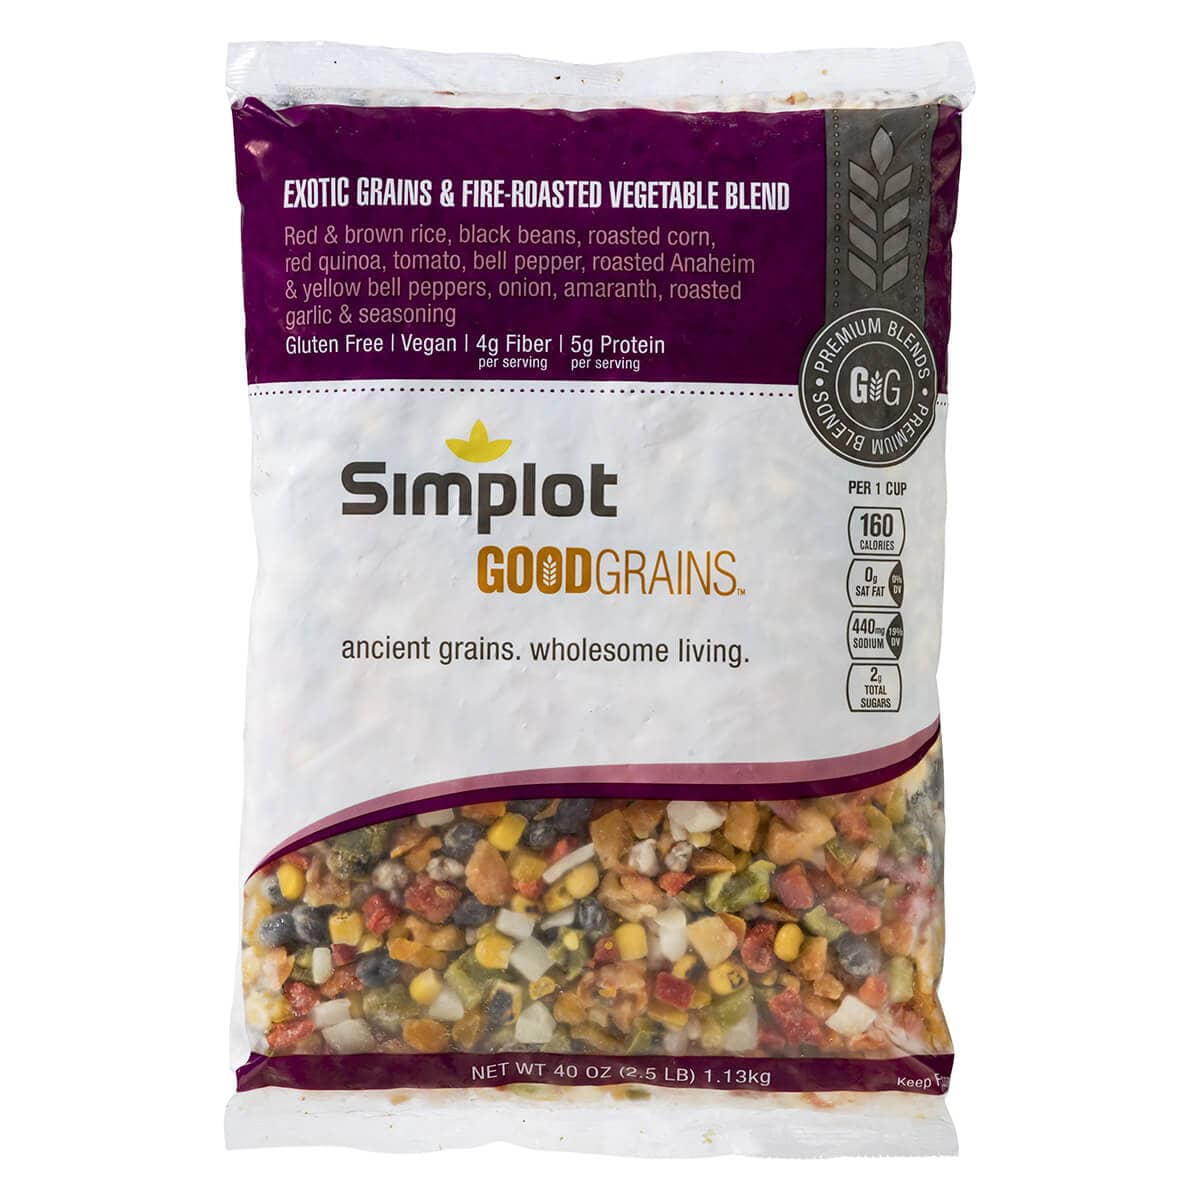 Simplot Good Grains™ Exotic Grains with Fire Roasted Vegetable Blend